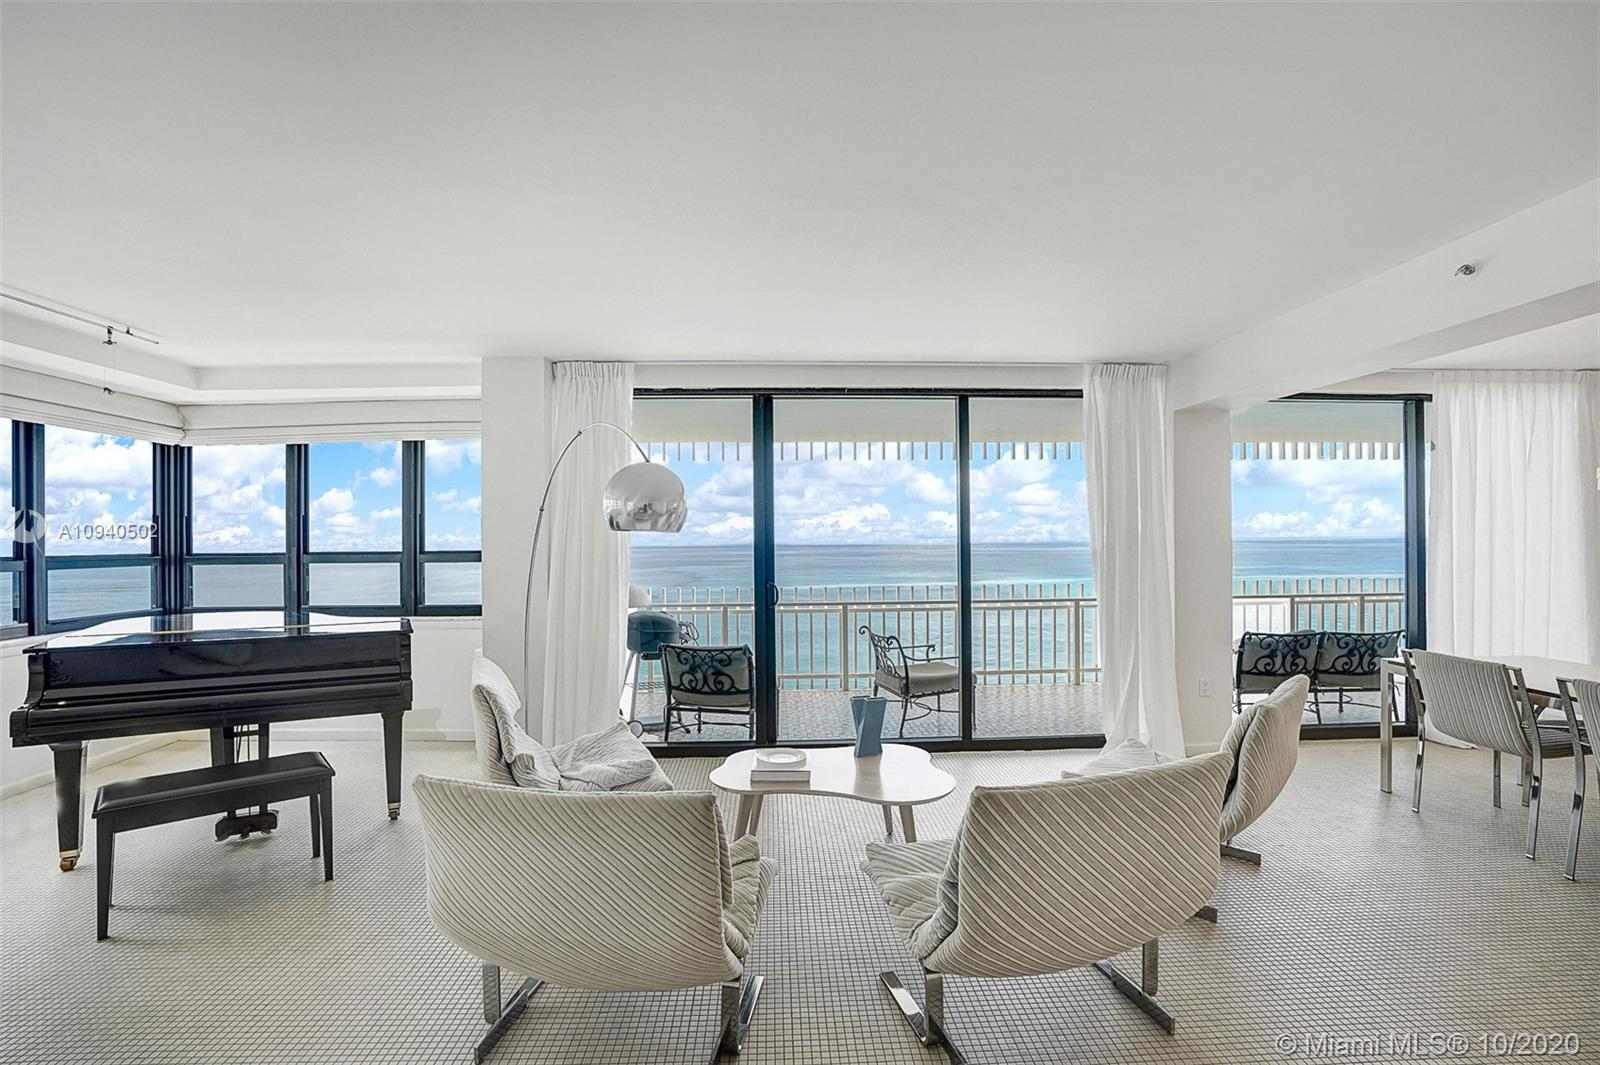 Spacious corner unit with 3 bedrooms, 2.5 baths on the beach at Kenilworth in Bal Harbour. Panoramic